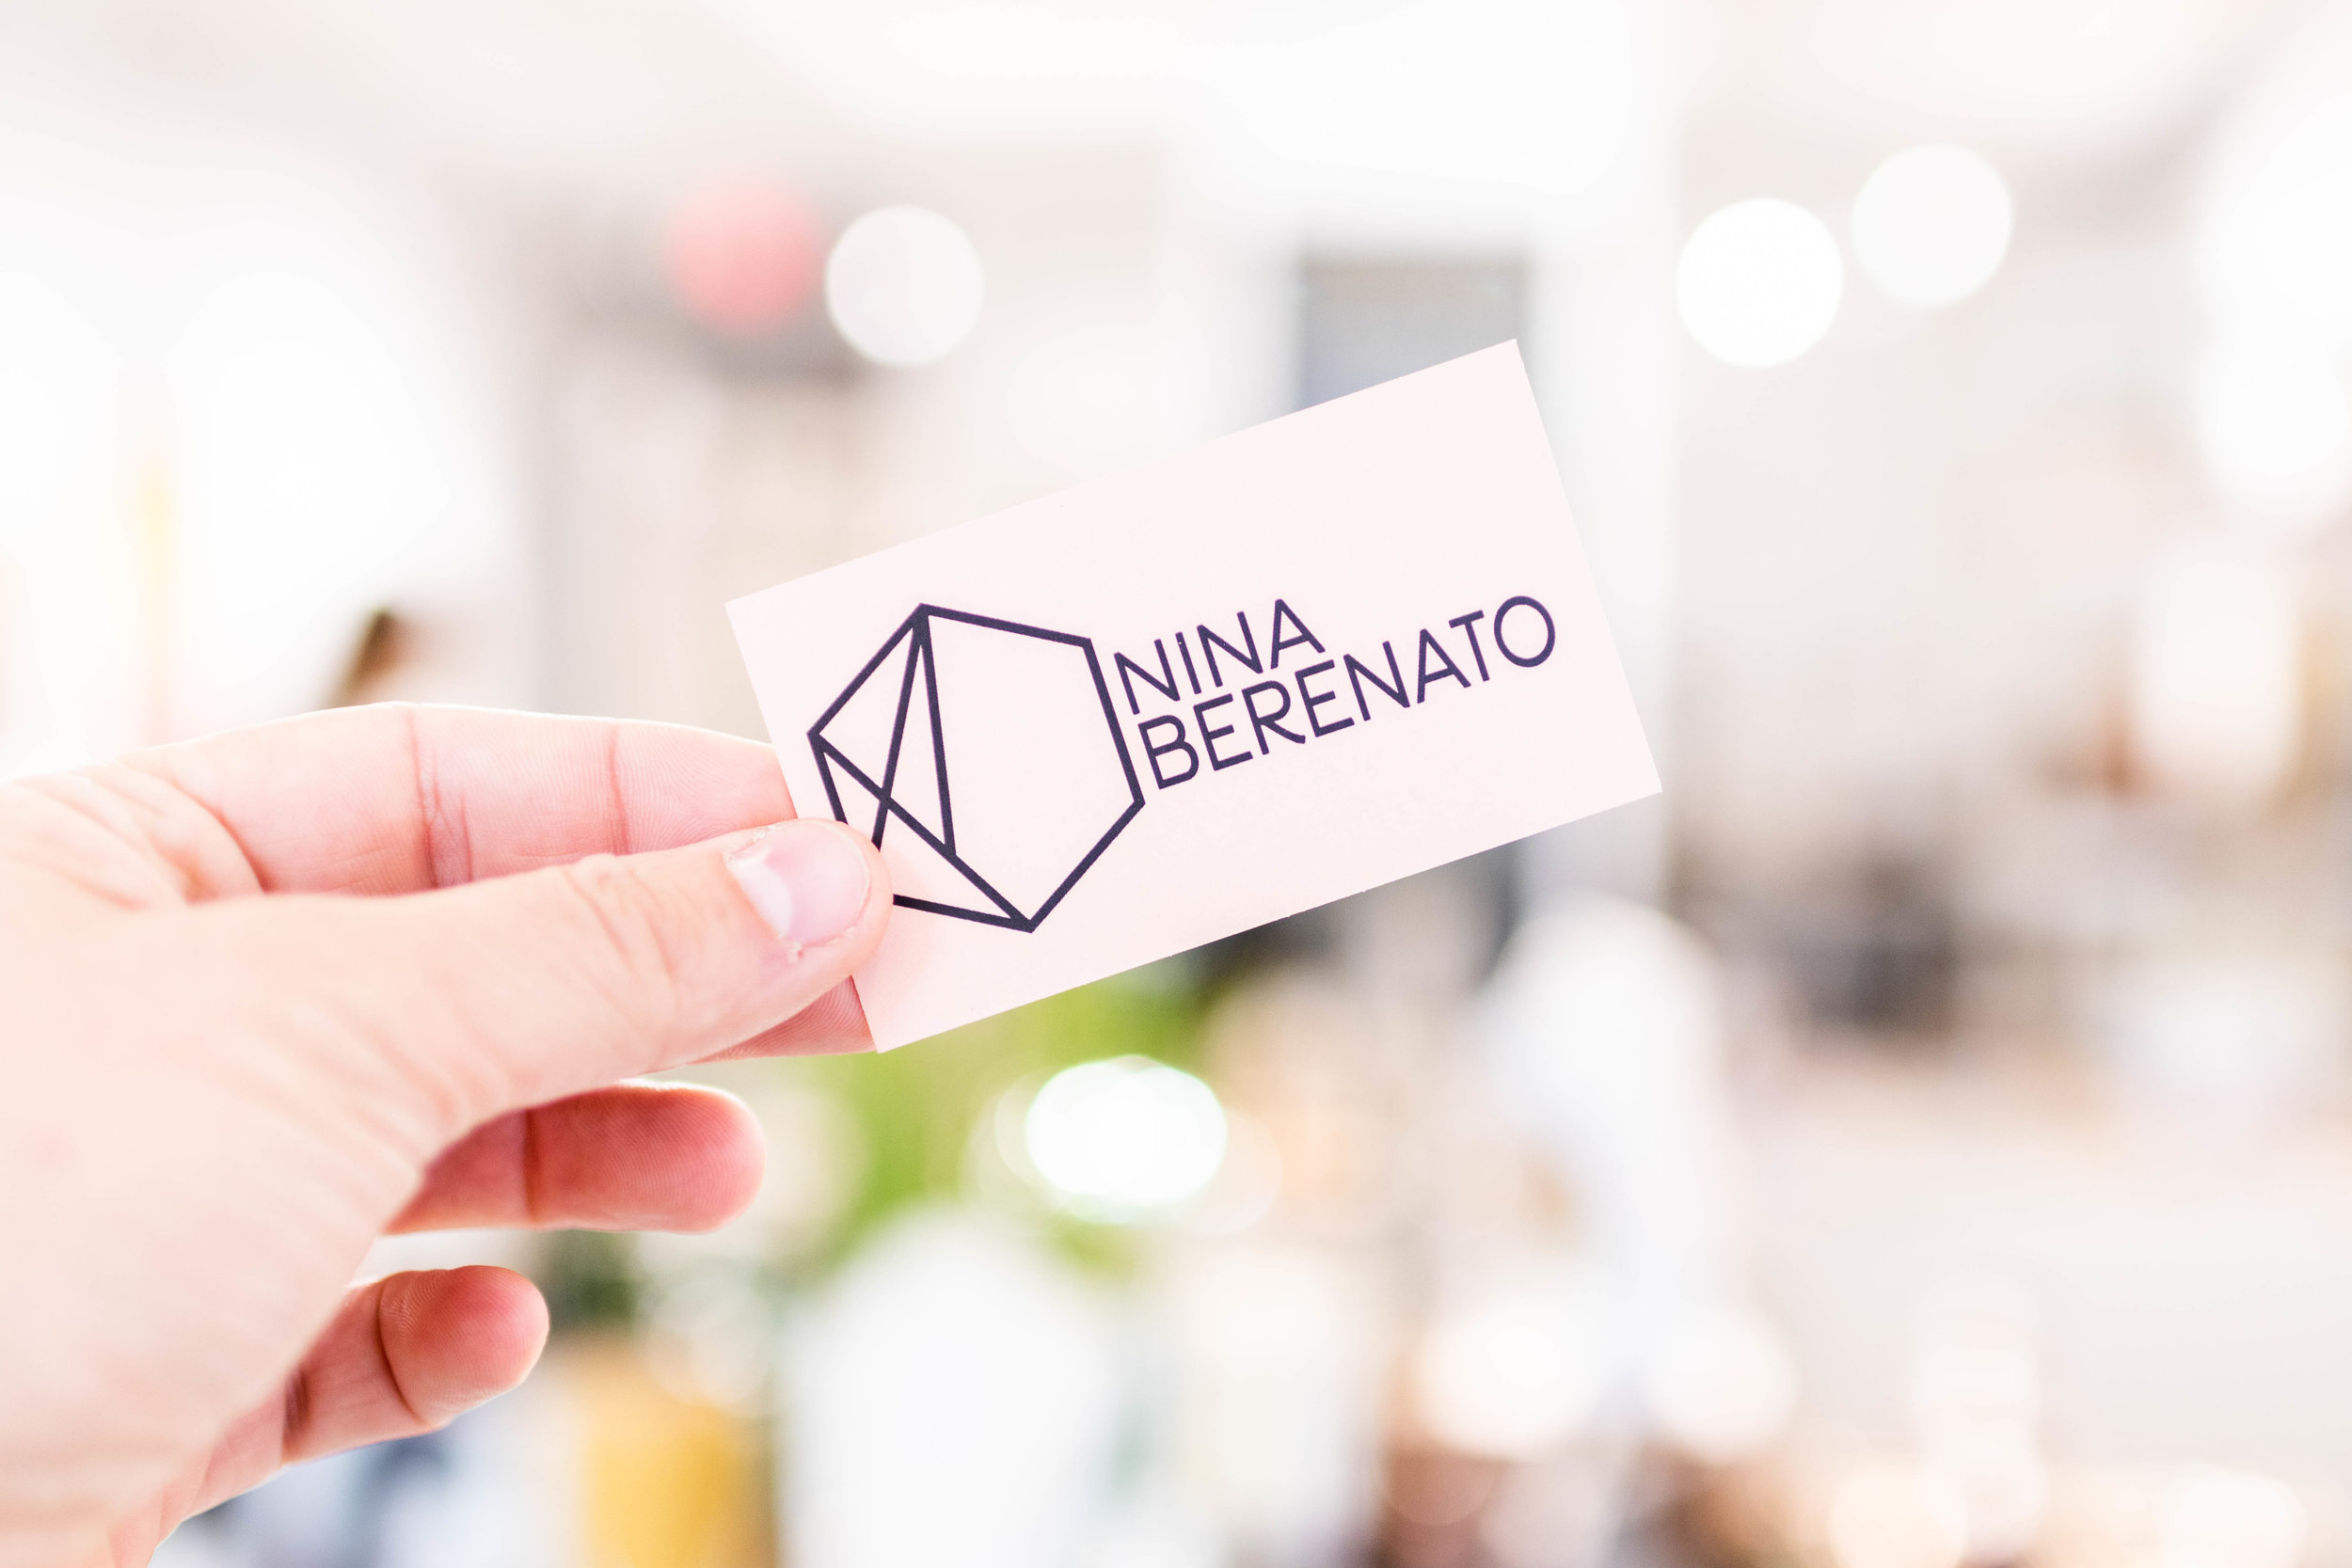 Nina Berenato - Empowering women of all to know their value. Nina Berenato has a kick butt selection of jewelry and she is an incredible person. Click below to check out her new collection, Inferno.